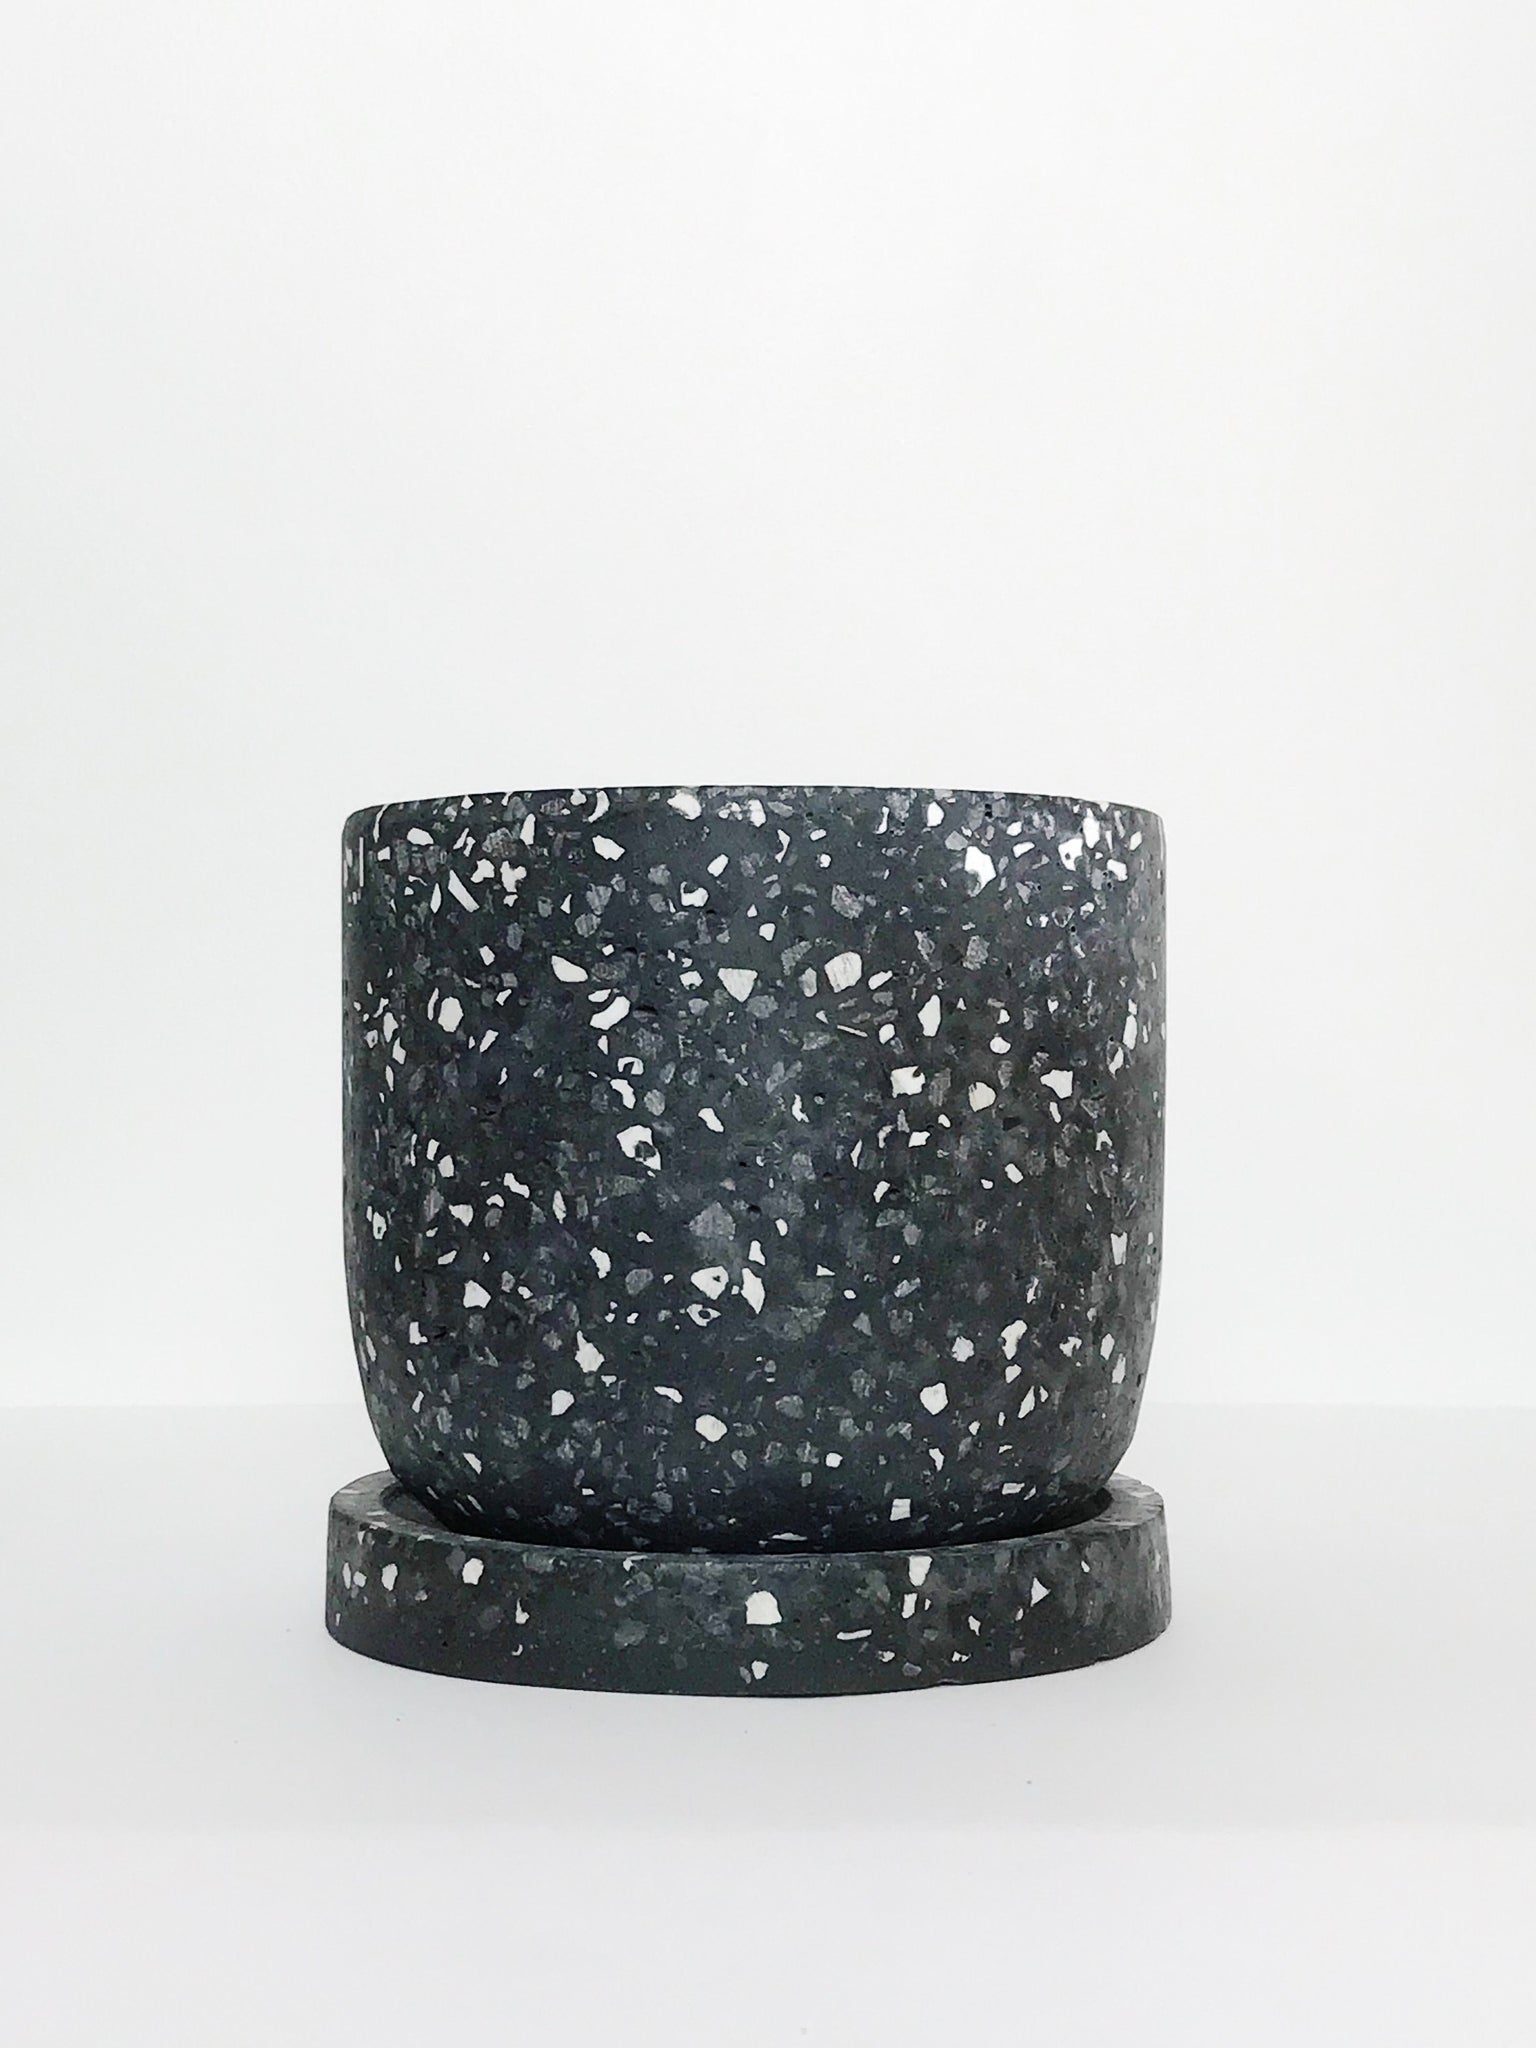 Speckled Charcoal Cement Planter w/ Drain Dish